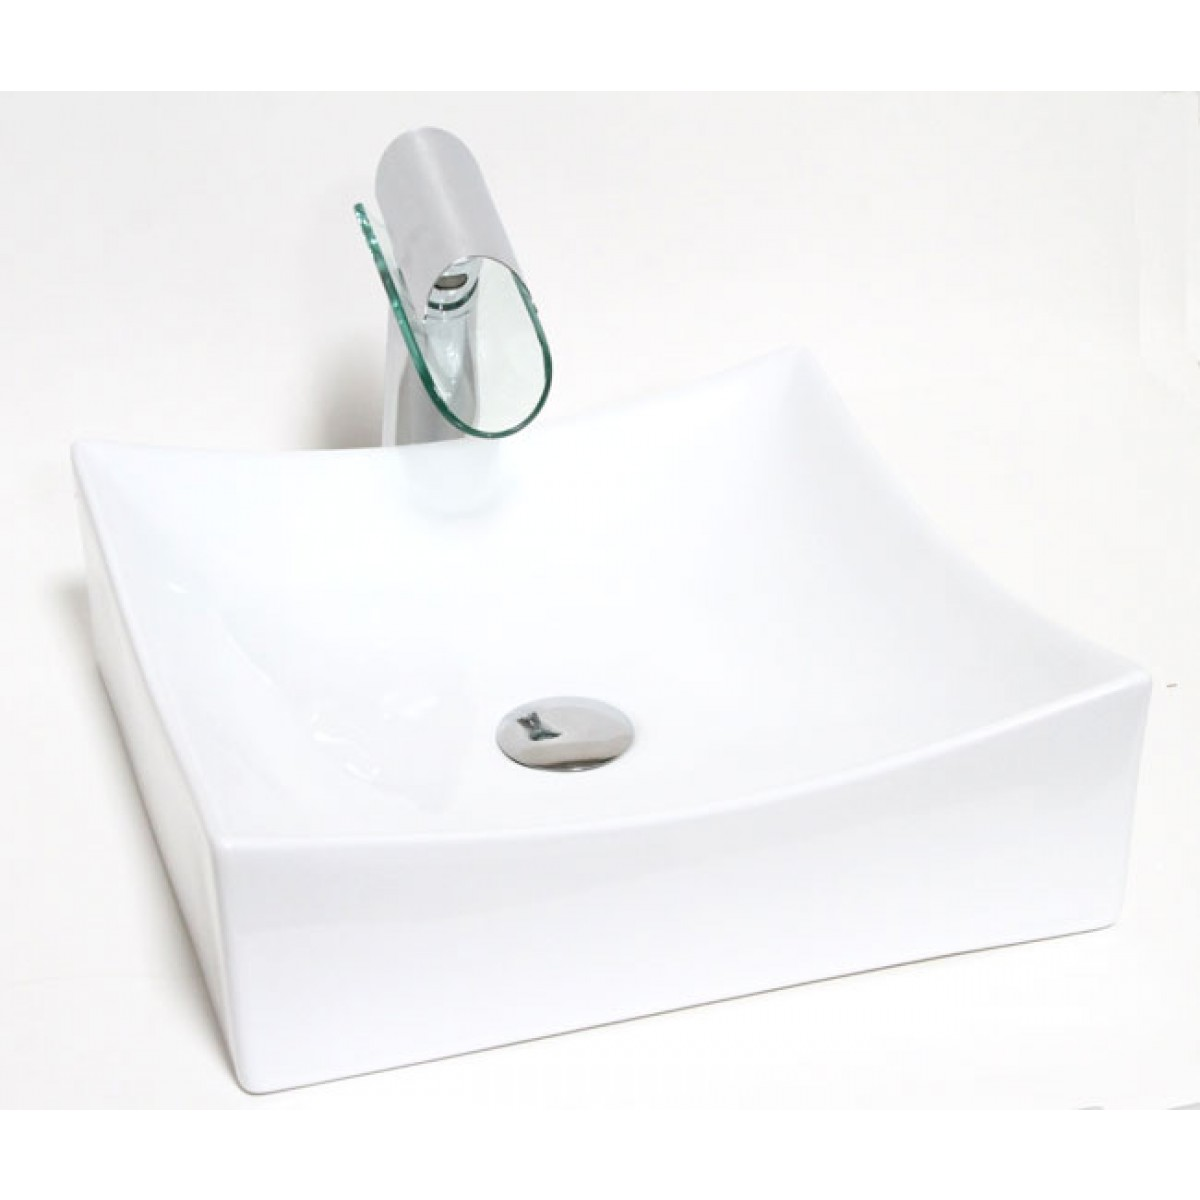 European Style Square Porcelain Ceramic Countertop Bathroom Vessel Sink   15 1/2  X 15 1/2 X 5 Inch